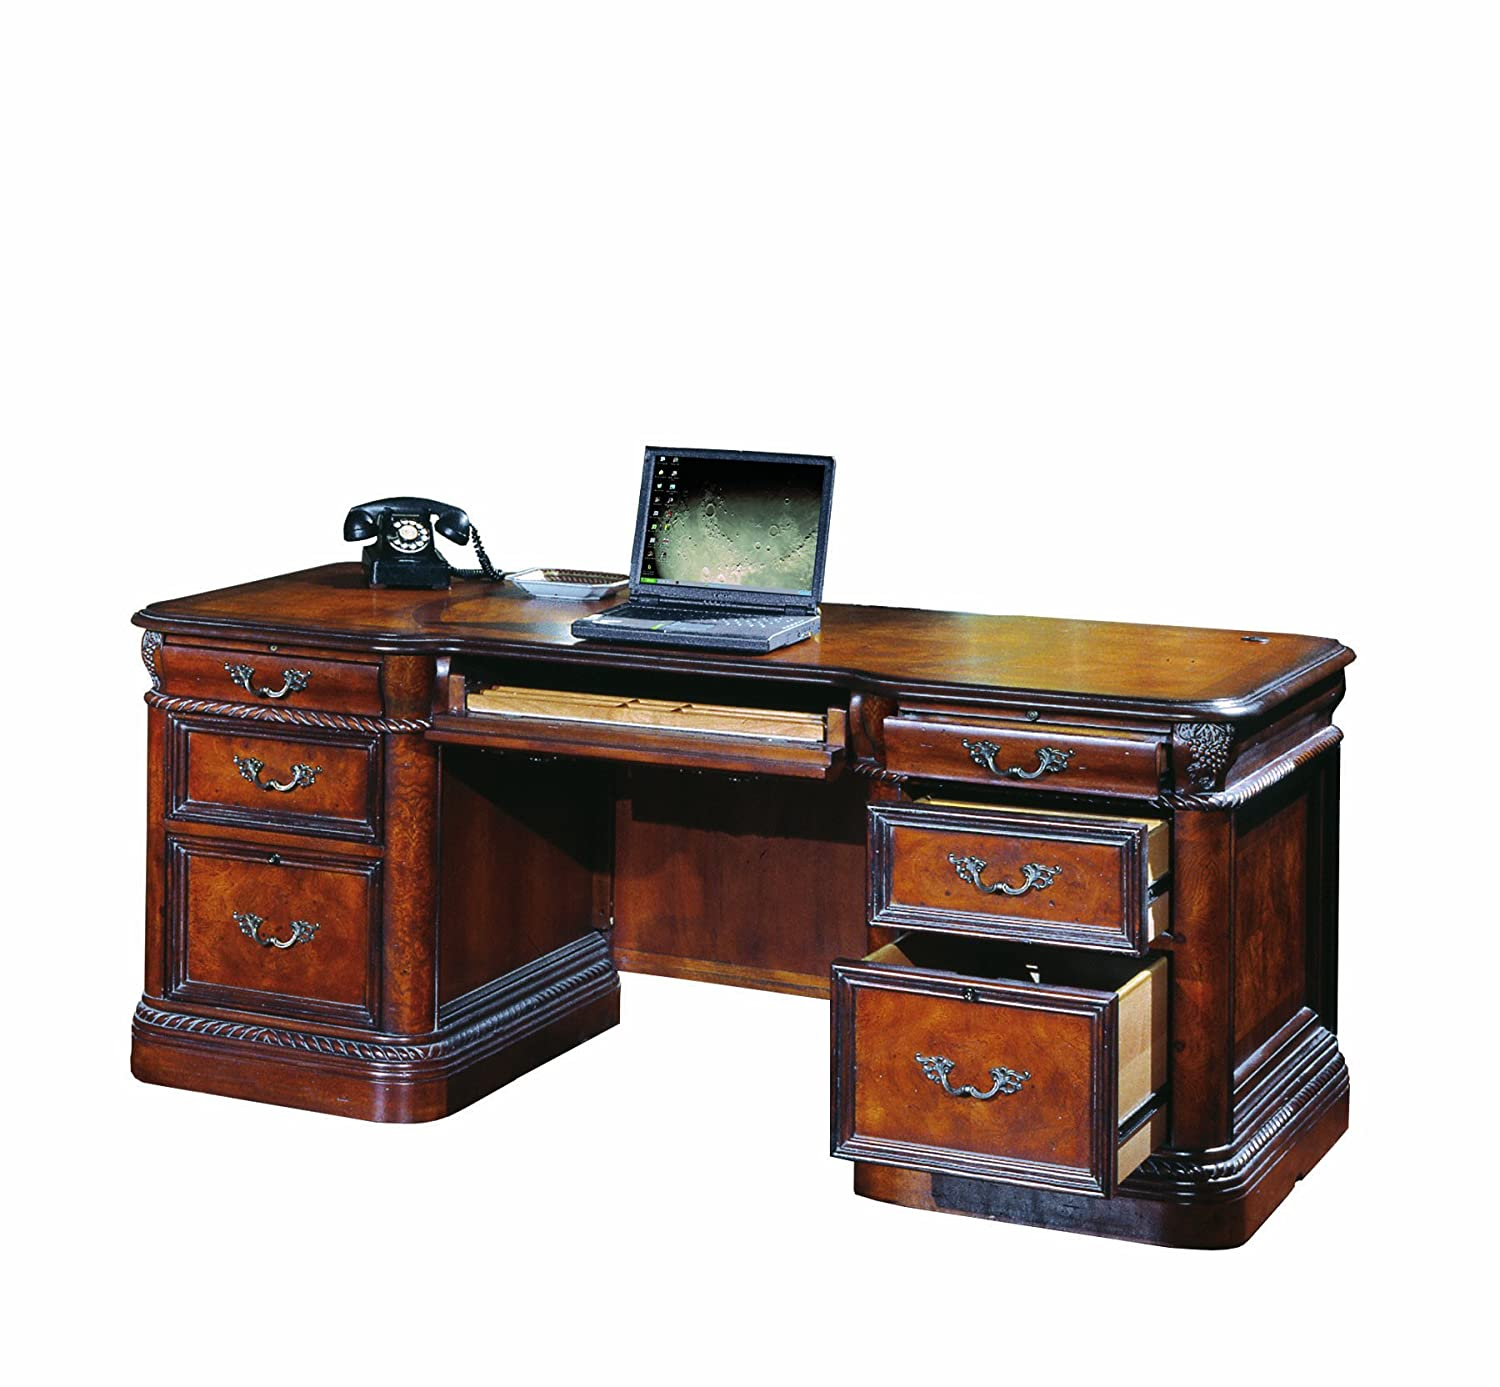 Executive computer desk - Amazon Com Vineyard Italian Style Executive Desk Home Office Computer Furniture Kitchen Dining